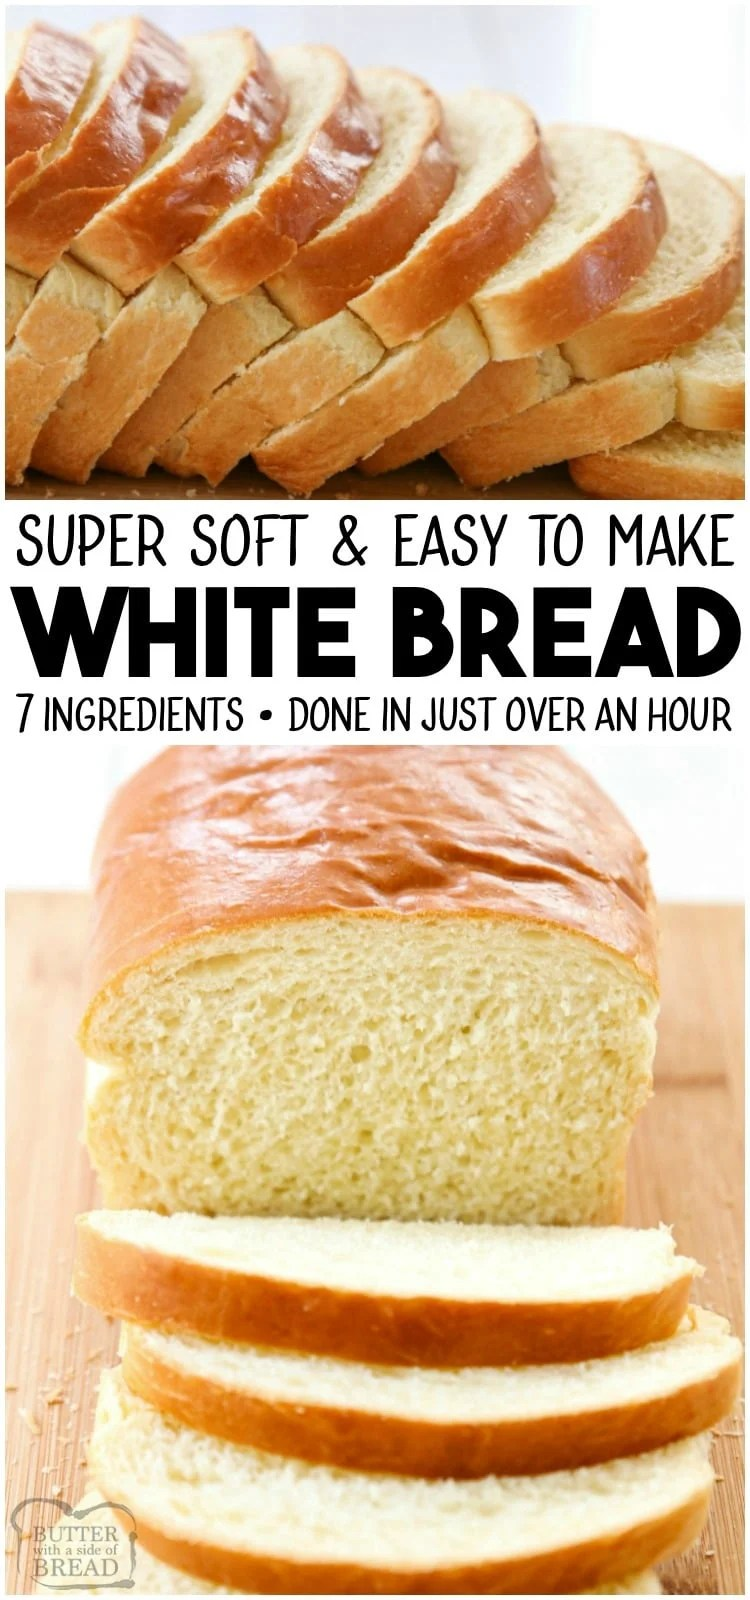 White Bread recipe is made with basic ingredients & detailed instructions showing how to make bread! Done in just over an hour this recipe is one of the best soft white sandwich bread recipes.